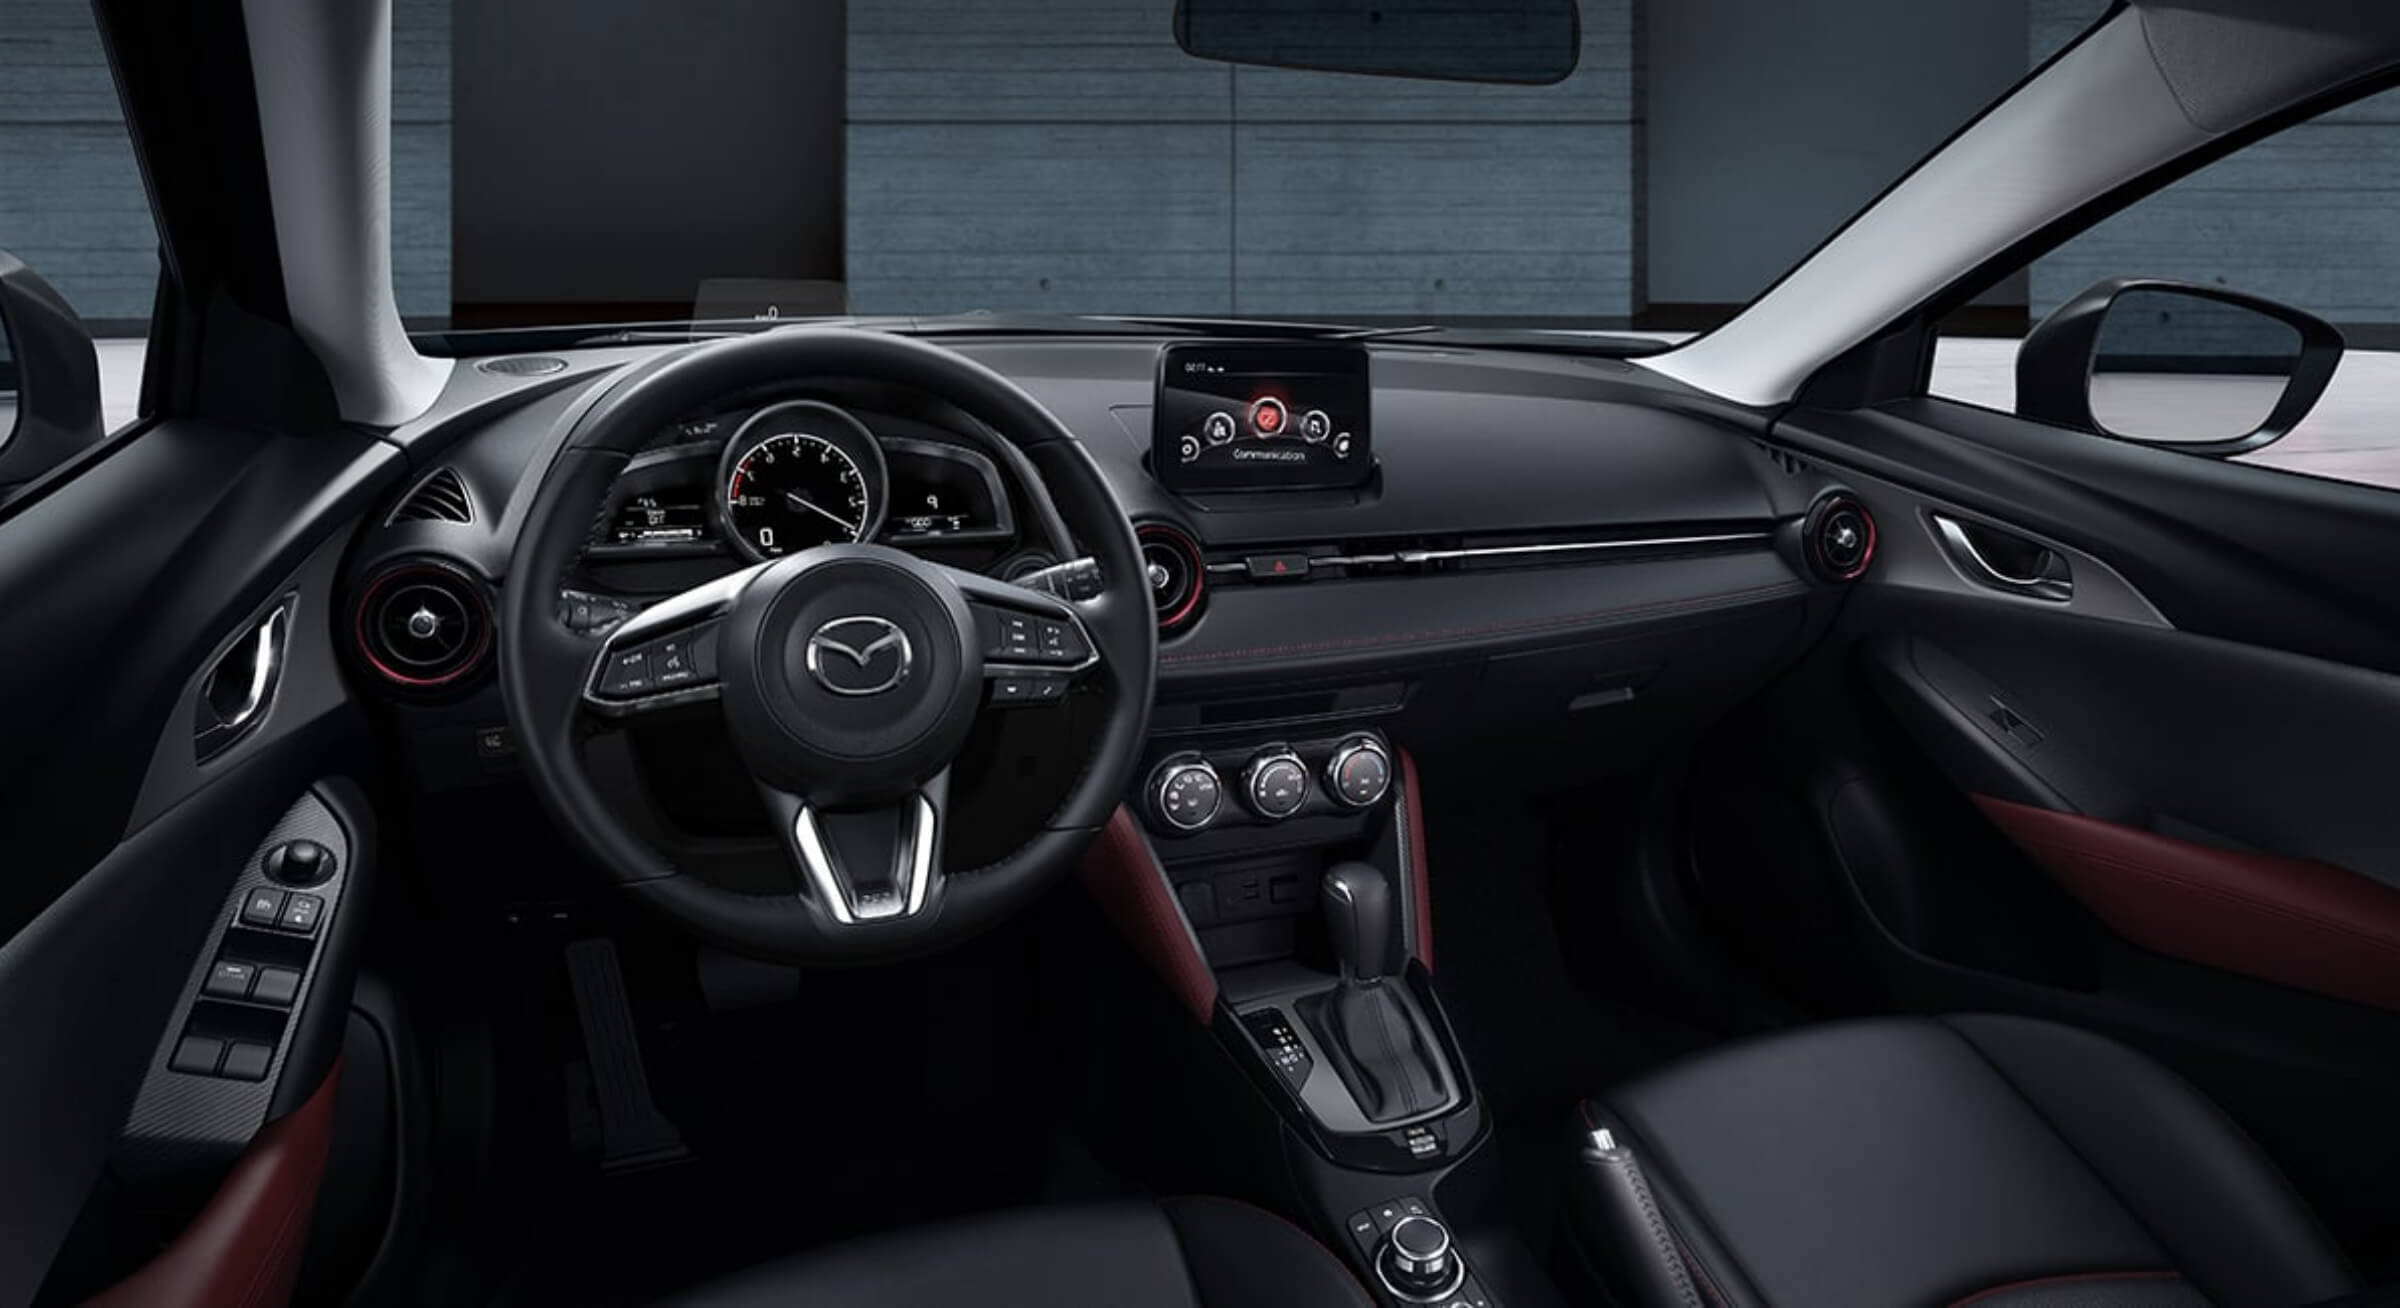 Mazdacx3-Black Leatherette